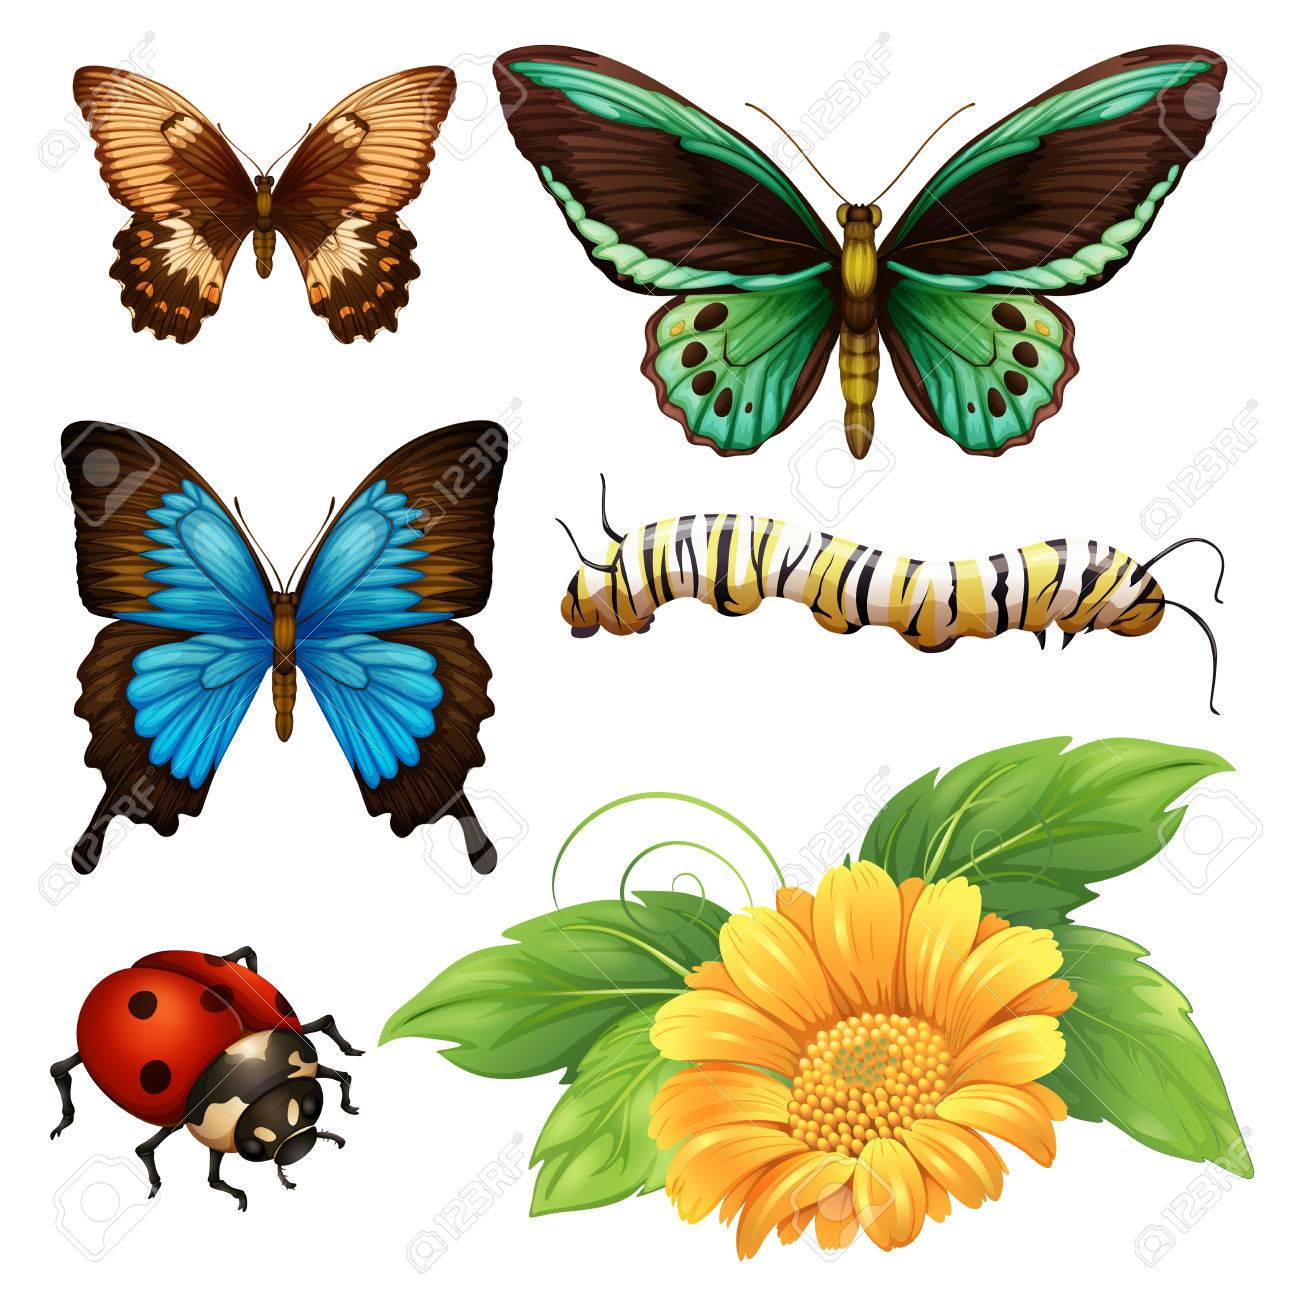 different kind of butterflies and bugs illustration royalty free